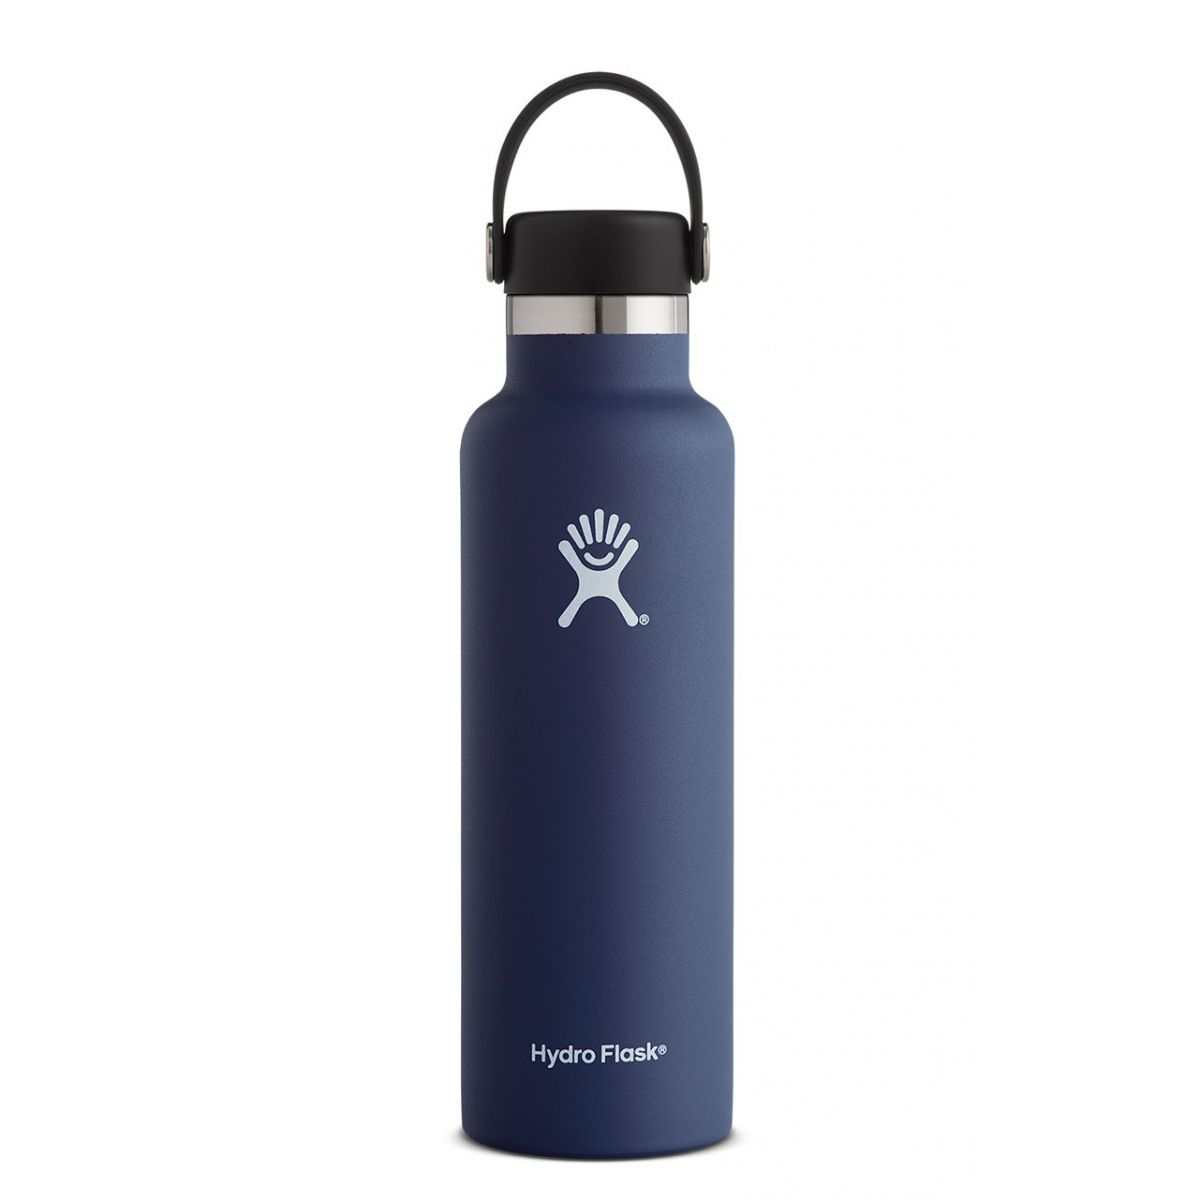 Image For Hydroflask Insulated Water Bottle, Cobalt